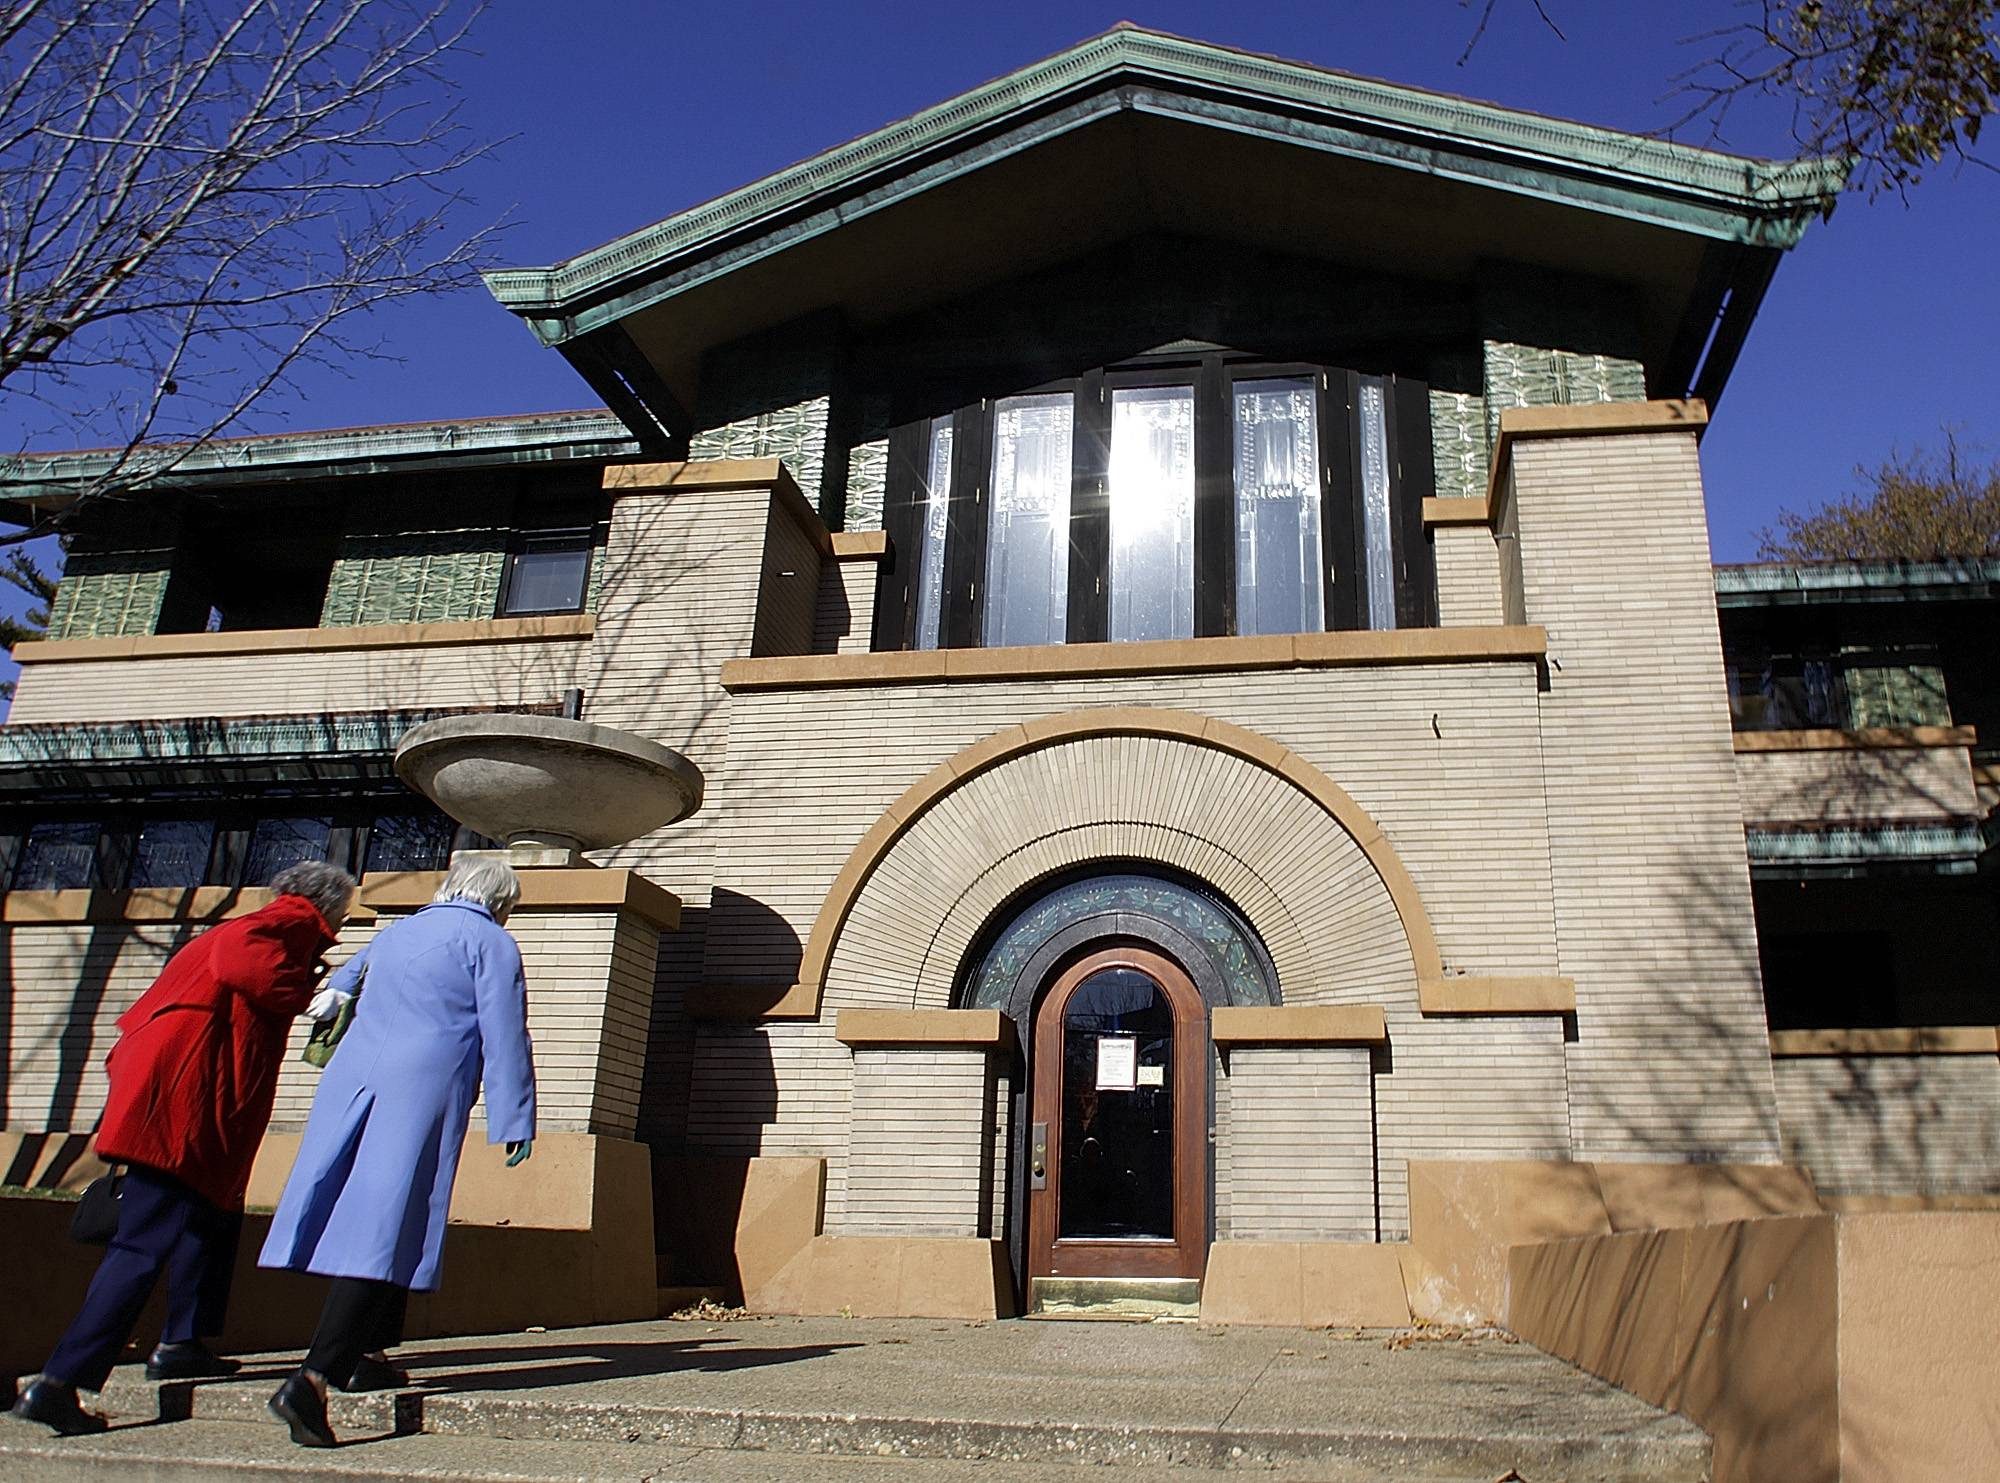 Tourists visit the Dana-Thomas House, perhaps the best-preserved example of famed architect Frank Lloyd Wright's Prairie period dwellings, in Springfield in November, 2008.